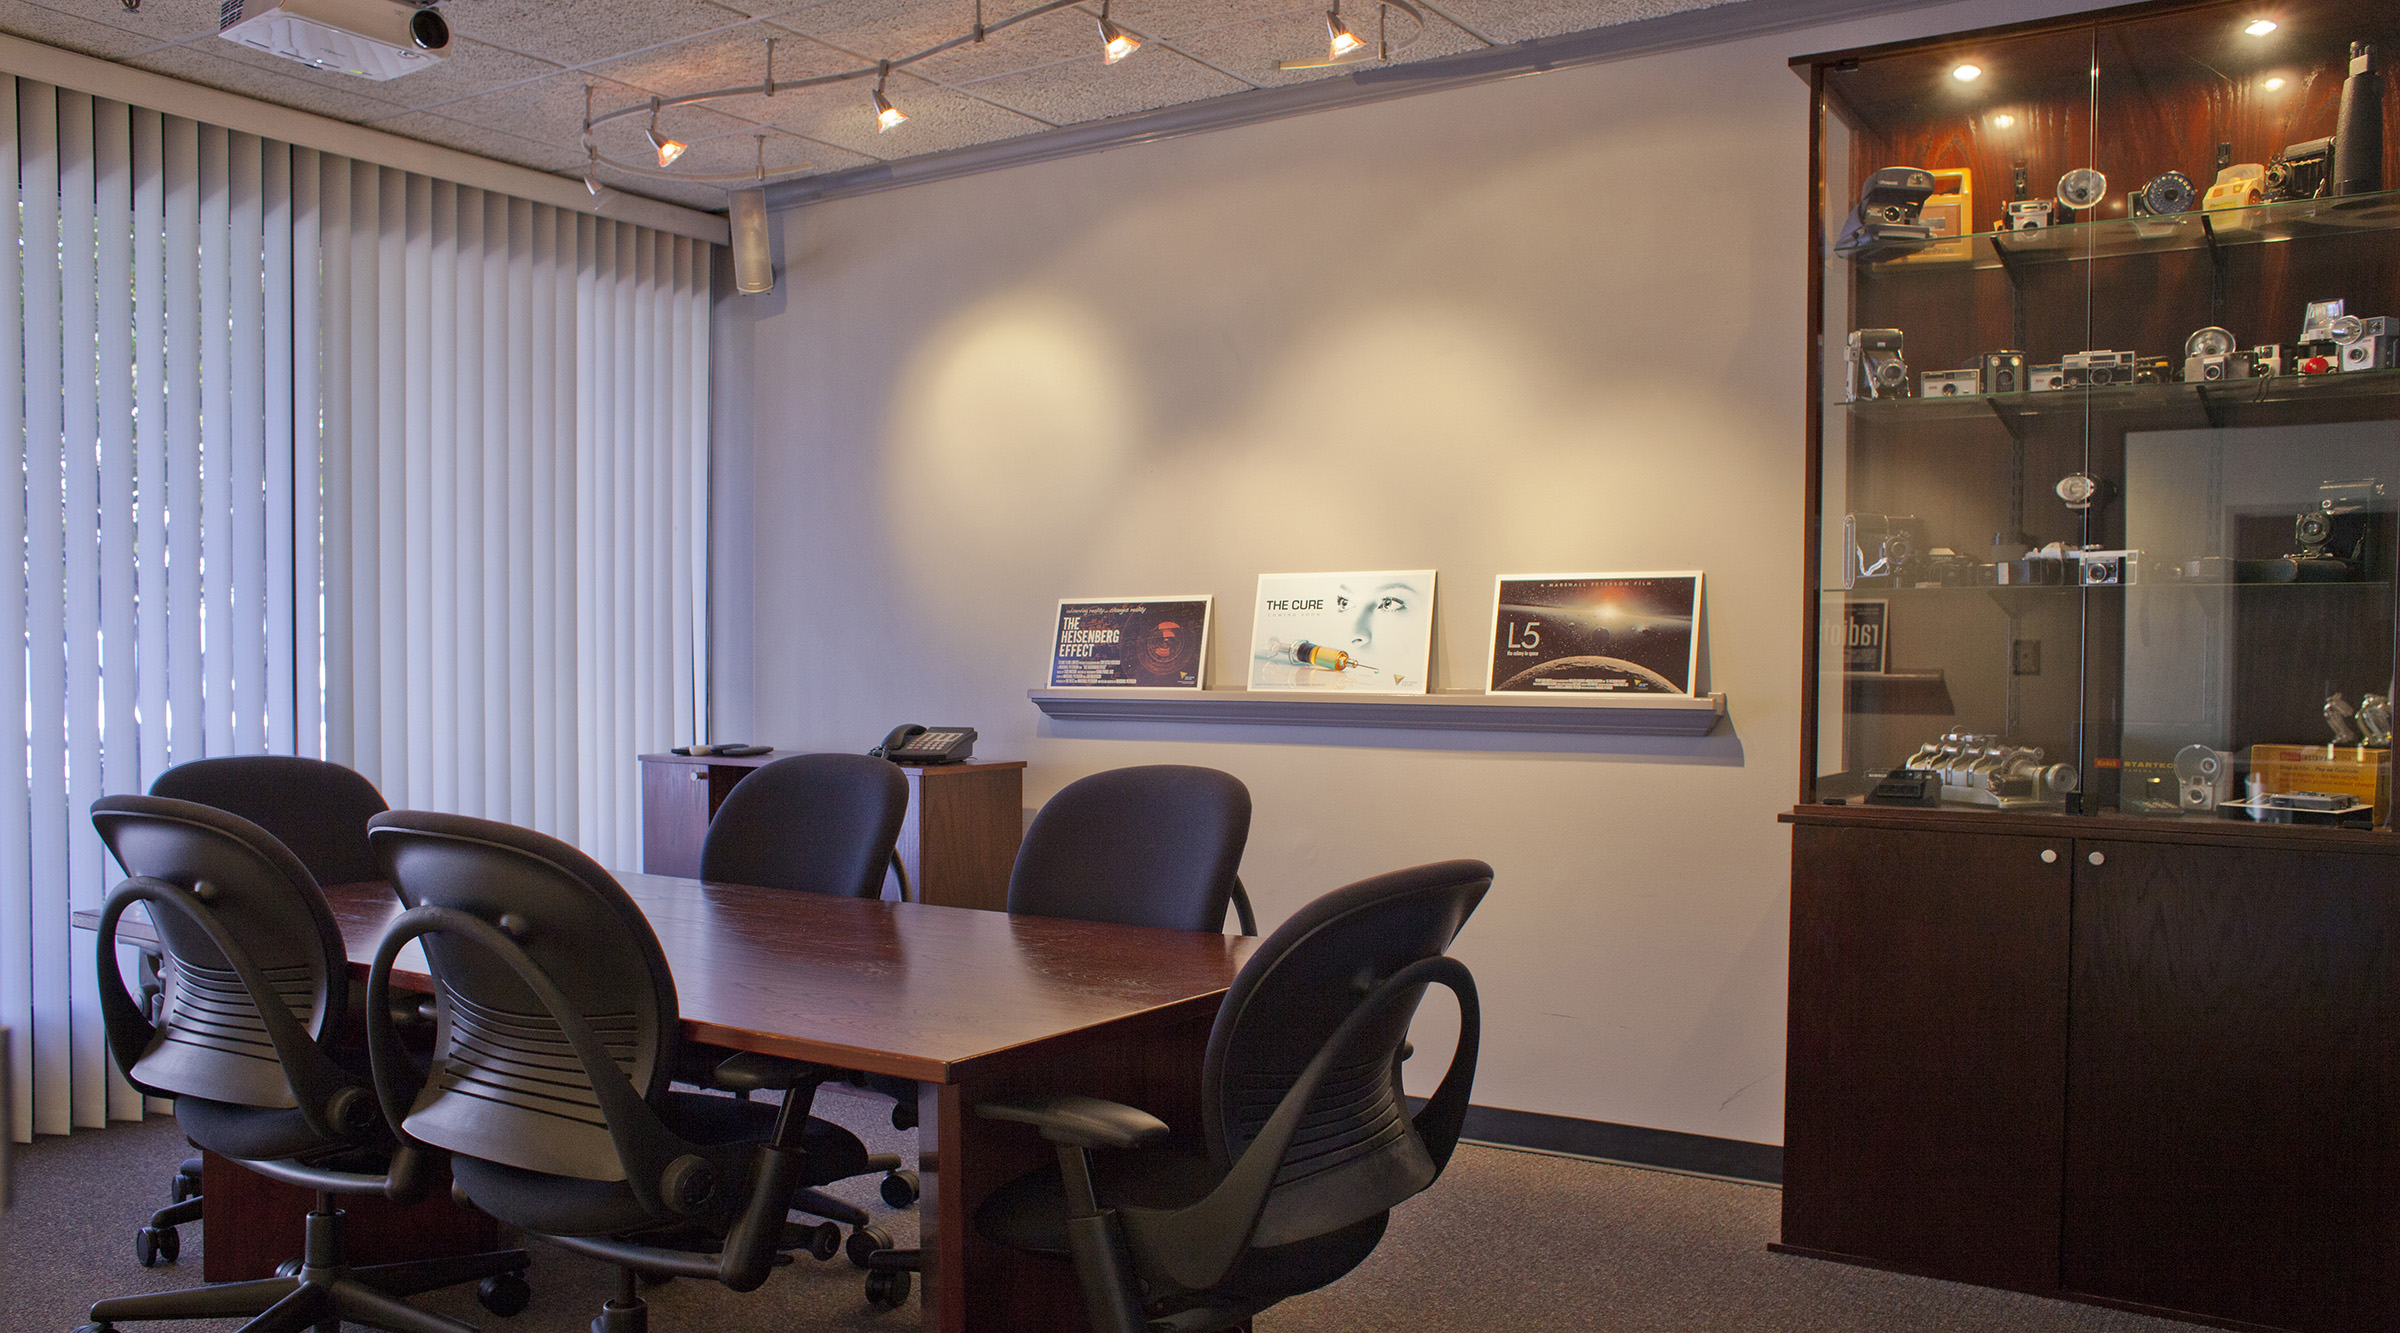 """This is our conference room. It has a table, indirect lighting, some comfortable Steelcase Leap chairs, a museum of unusual and vintage cameras, HD projection to a 90"""" screen and big windows that look out to the parking lot. We also have skinny shelves to display storyboards. It's a conference room."""